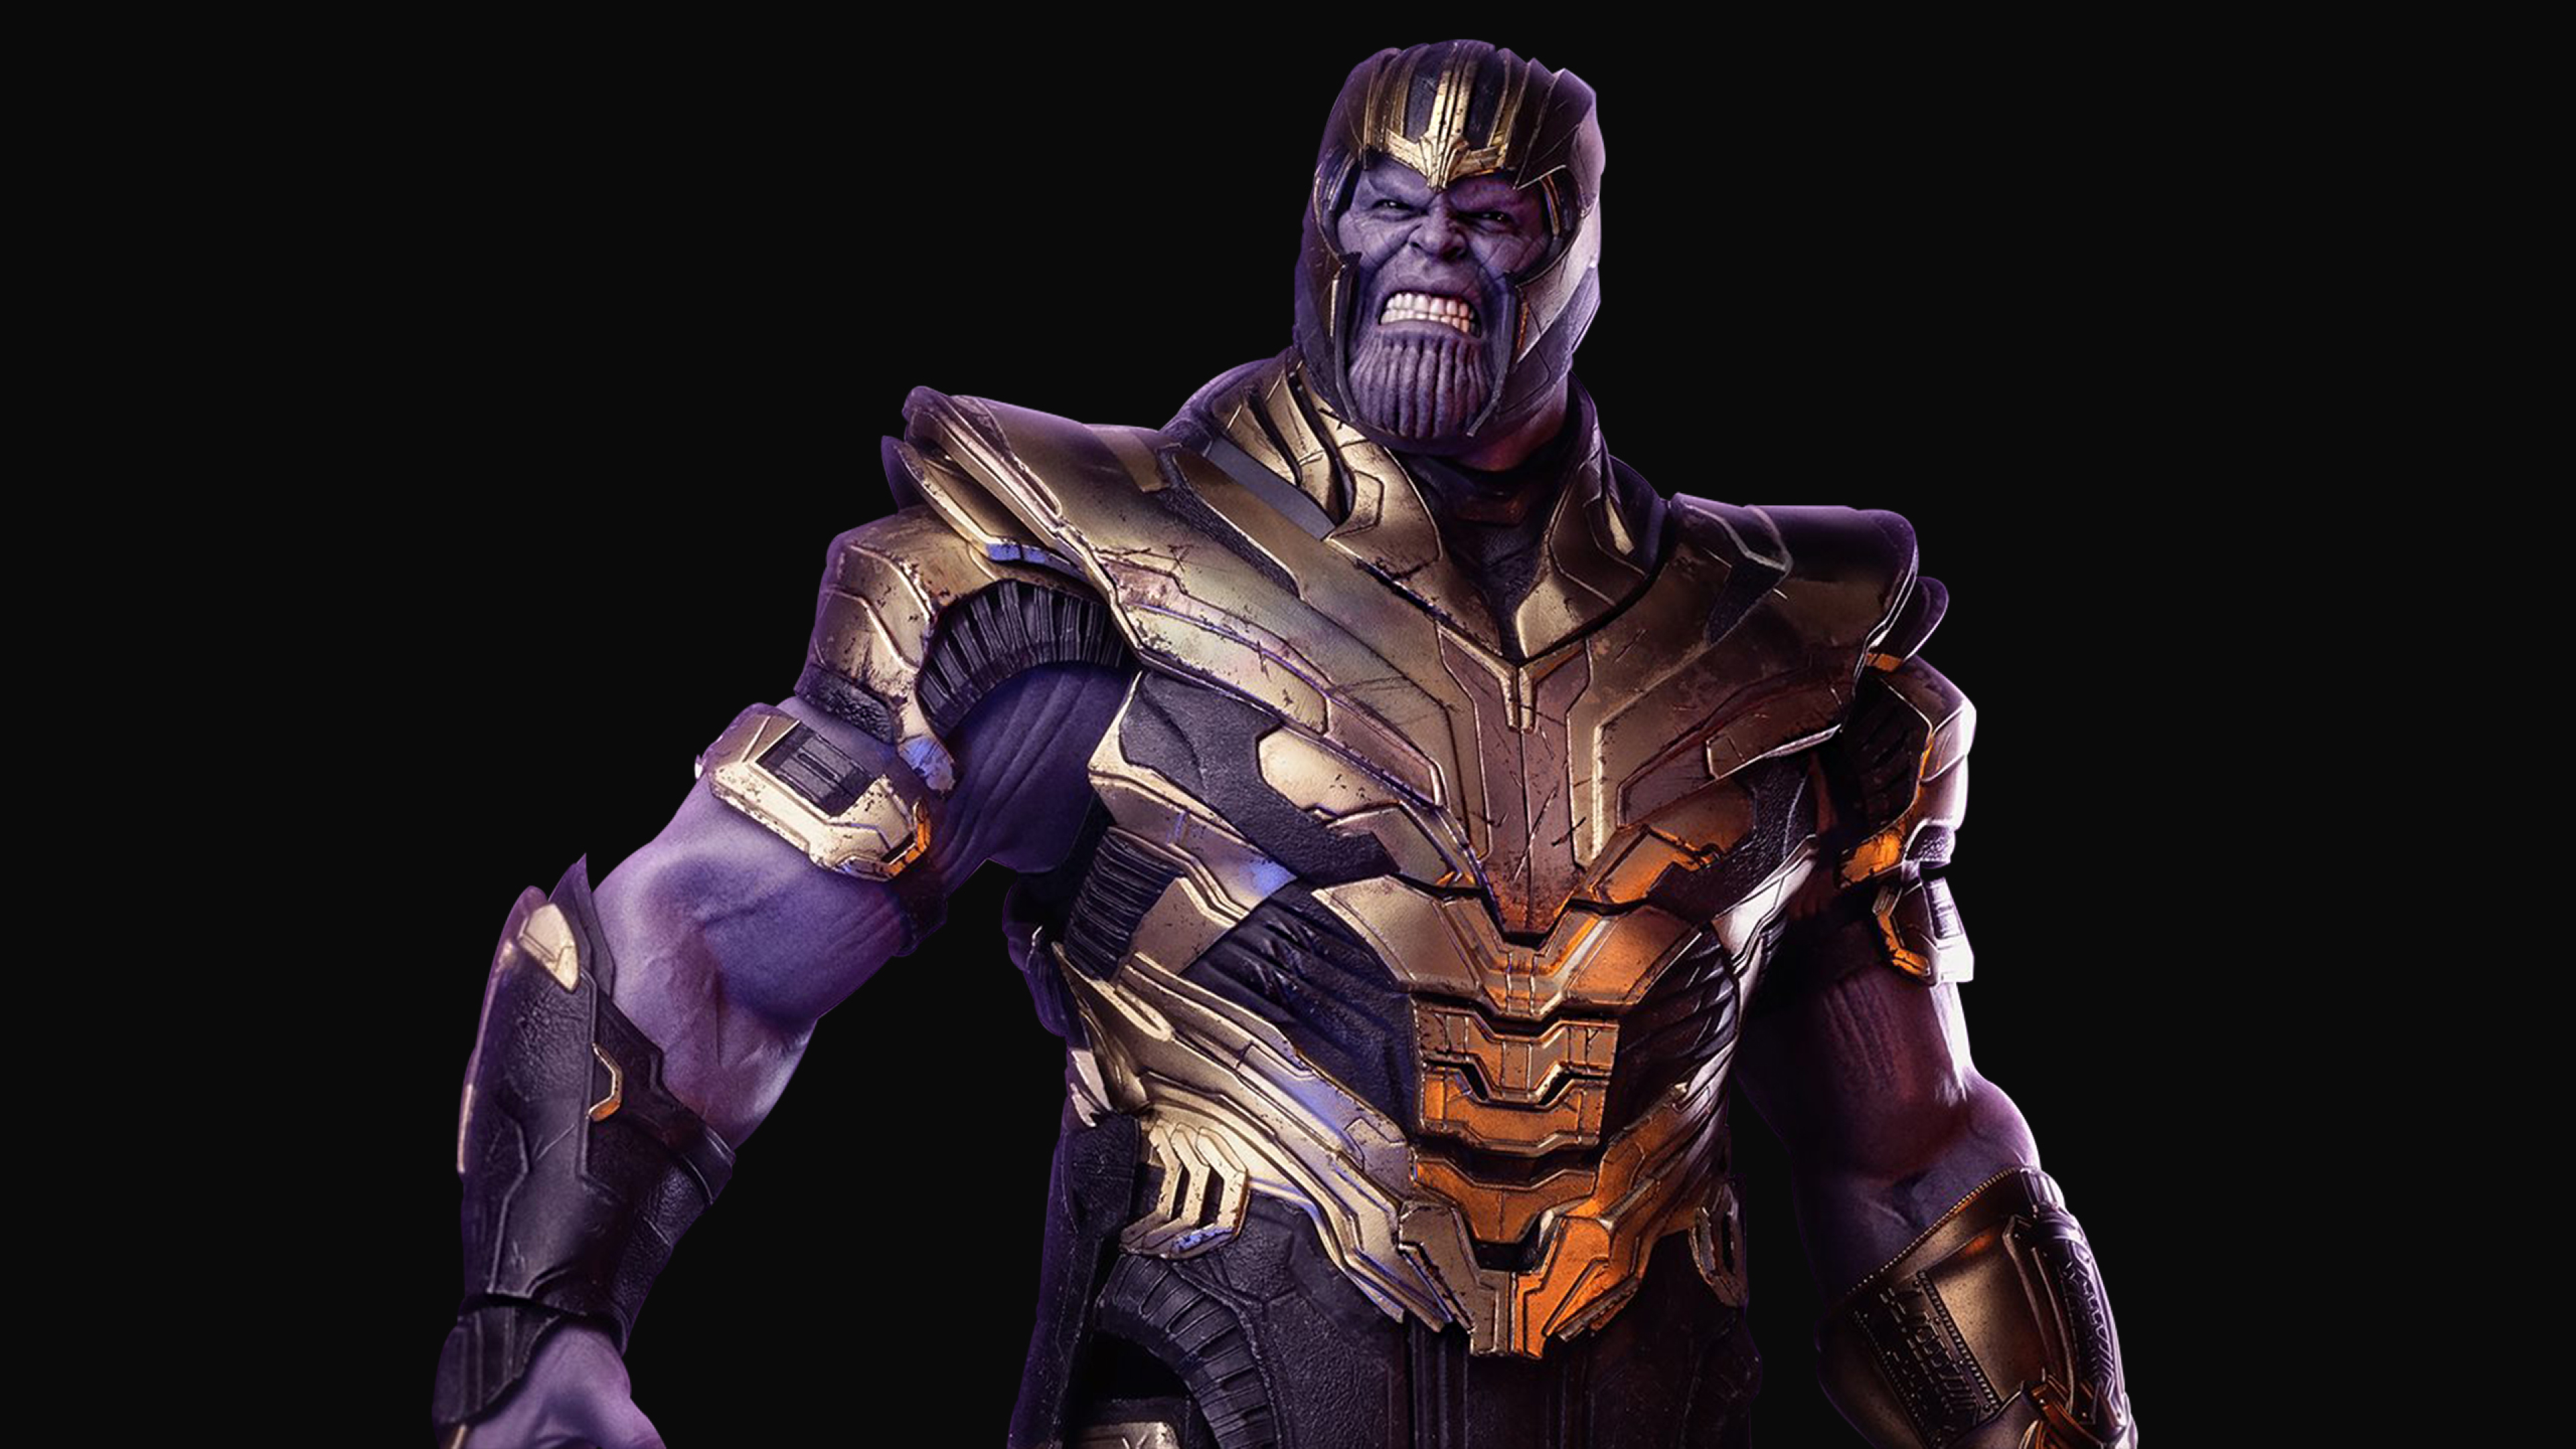 3840x2160 Thanos In Avengers Endgame 4k Wallpaper Hd Movies